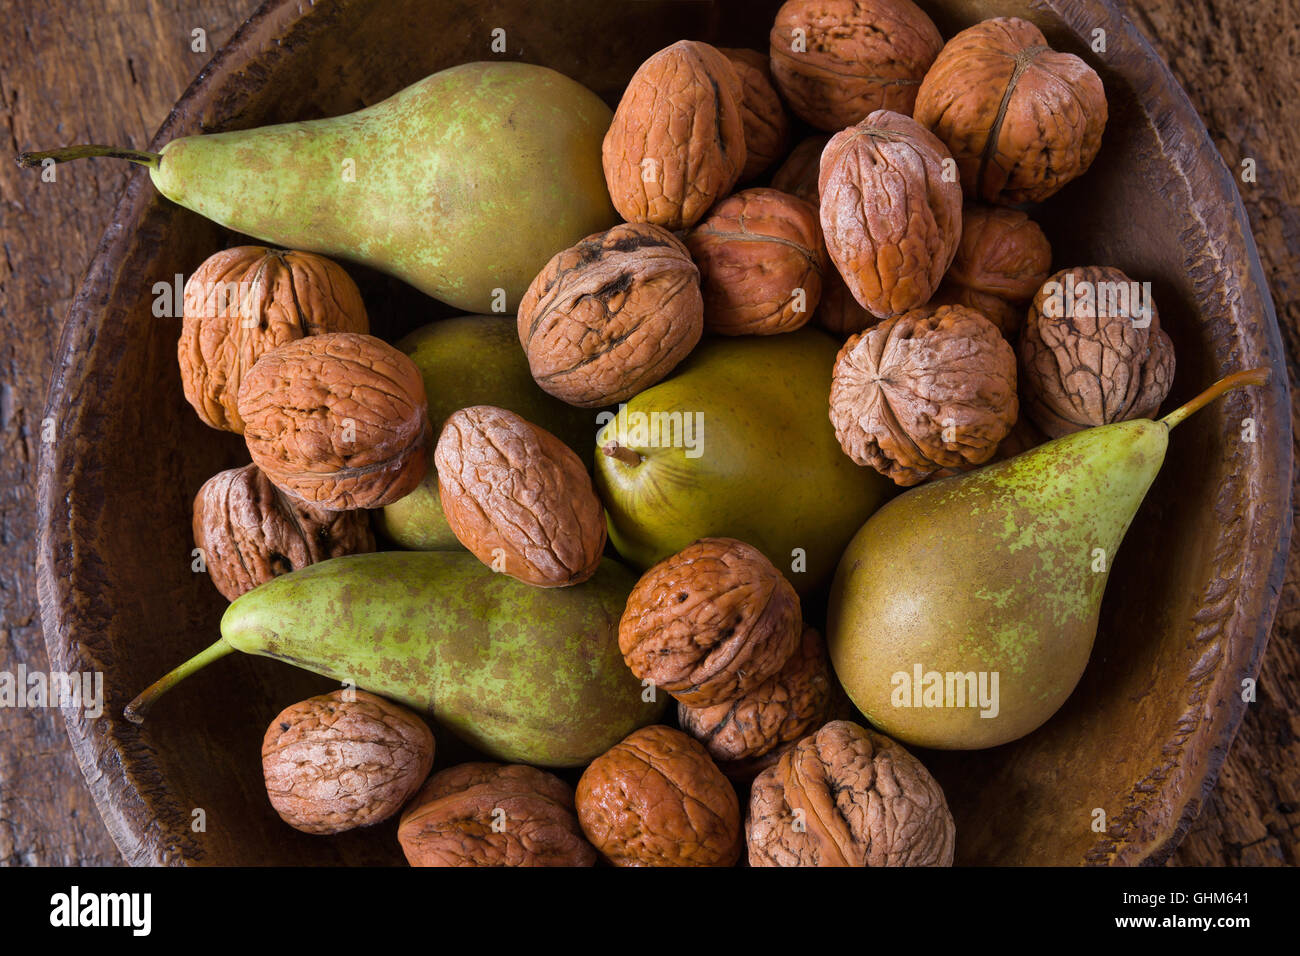 Autumn still life of fall leaves and walnuts on a grunge wooden background - Stock Image